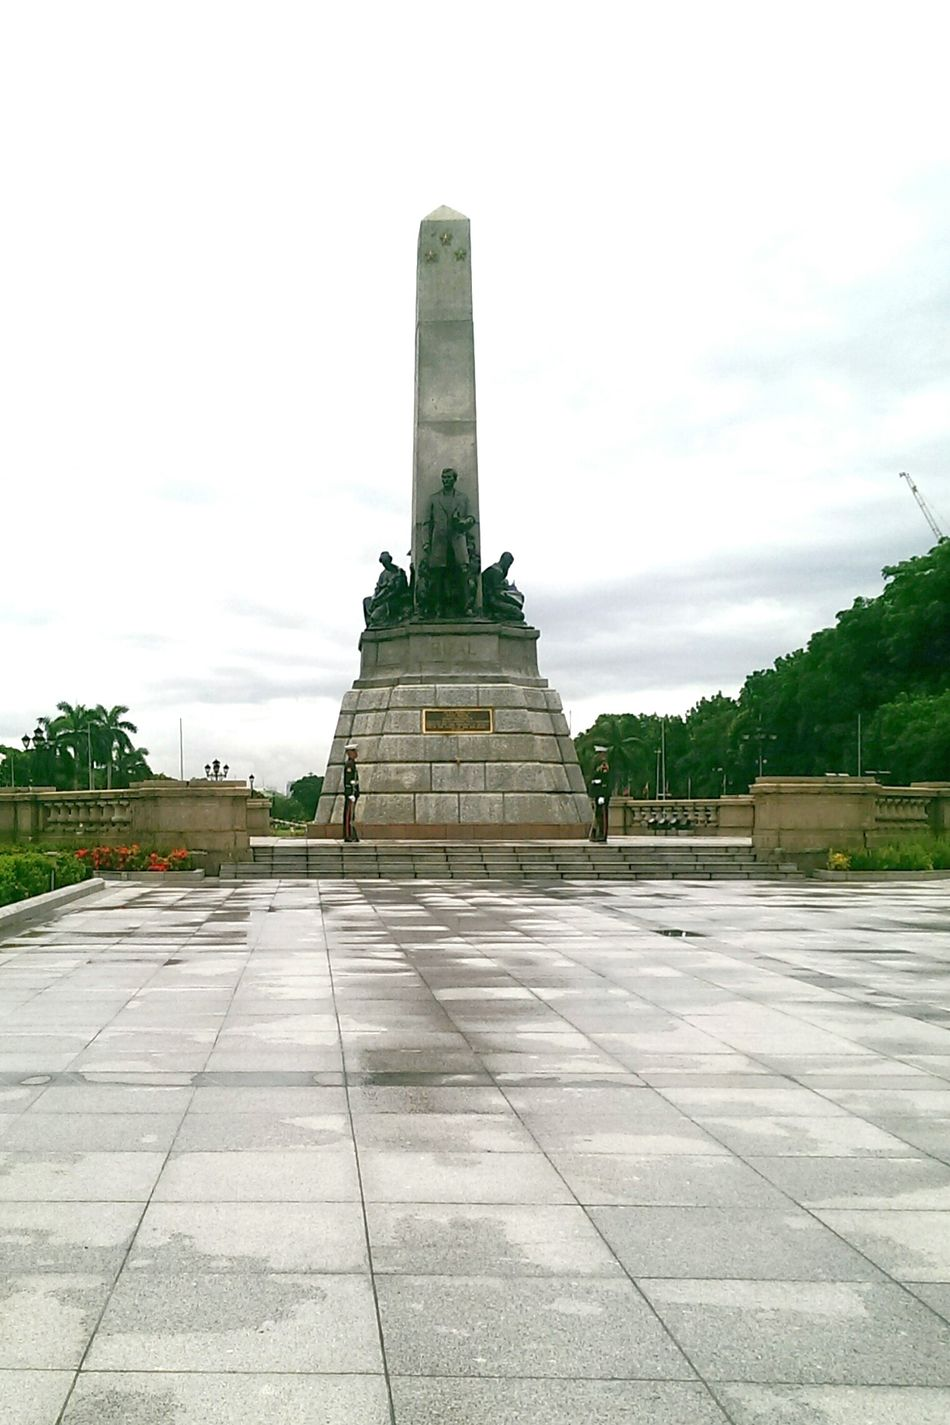 After the rain at the park. Rizal Park At Rizal Park Jose Rizal Monument Jose Rizal Monument After The Rain Gloomy Day Luneta Guards On Duty Showcase July